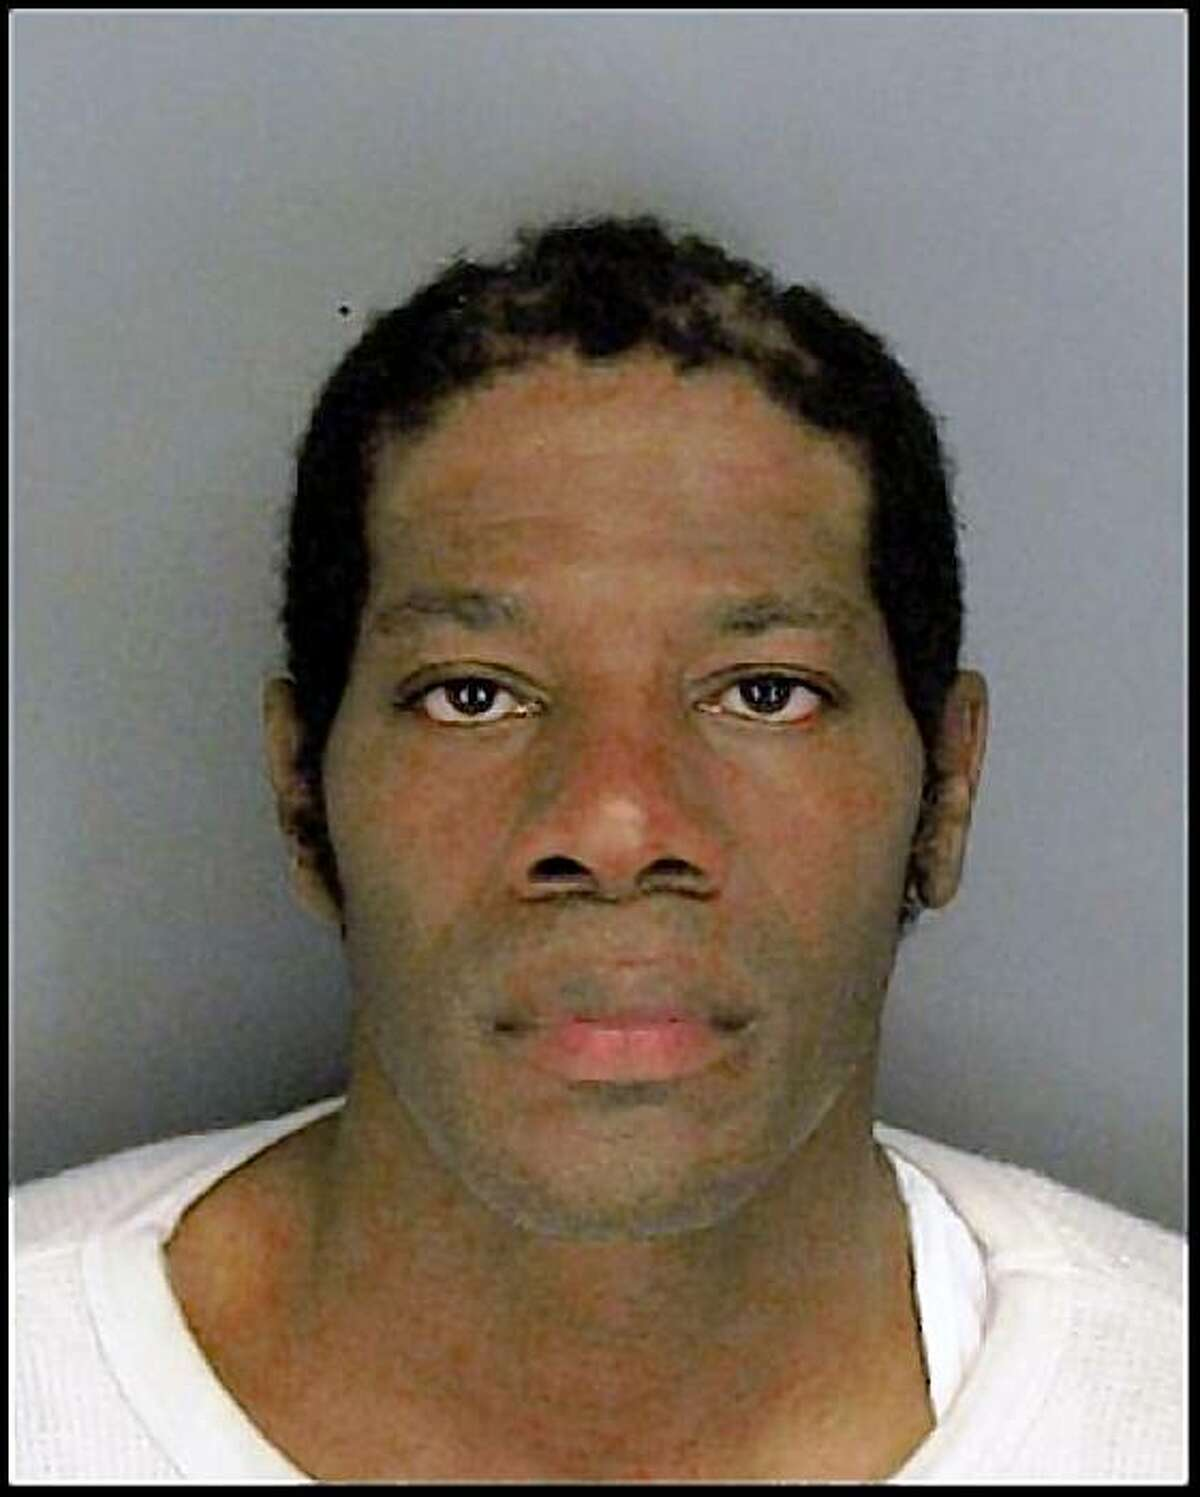 This Placer County Jail booking photo shows Nathaniel Burris on Wednesday, August 12, 2009. Burris, accused of killing his ex-girlfriend and her male friend at the Richmond-San Rafael Bridge toll plaza, insisted on pleading guilty during a brief court hearing in Martinez, Calif., on August 14, 2009.